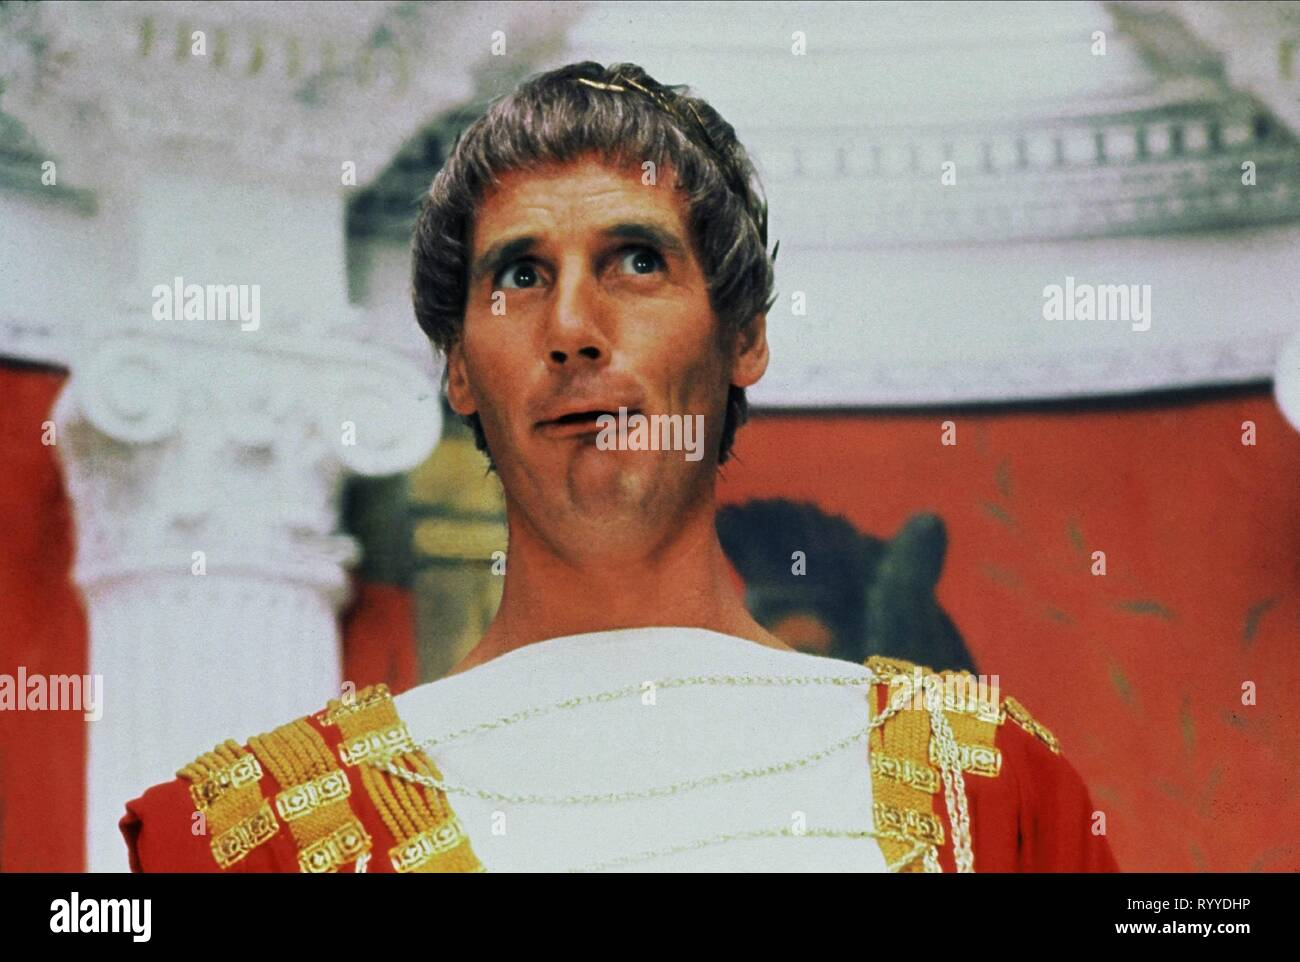 Life Of Brian Michael Palin High Resolution Stock Photography And Images Alamy